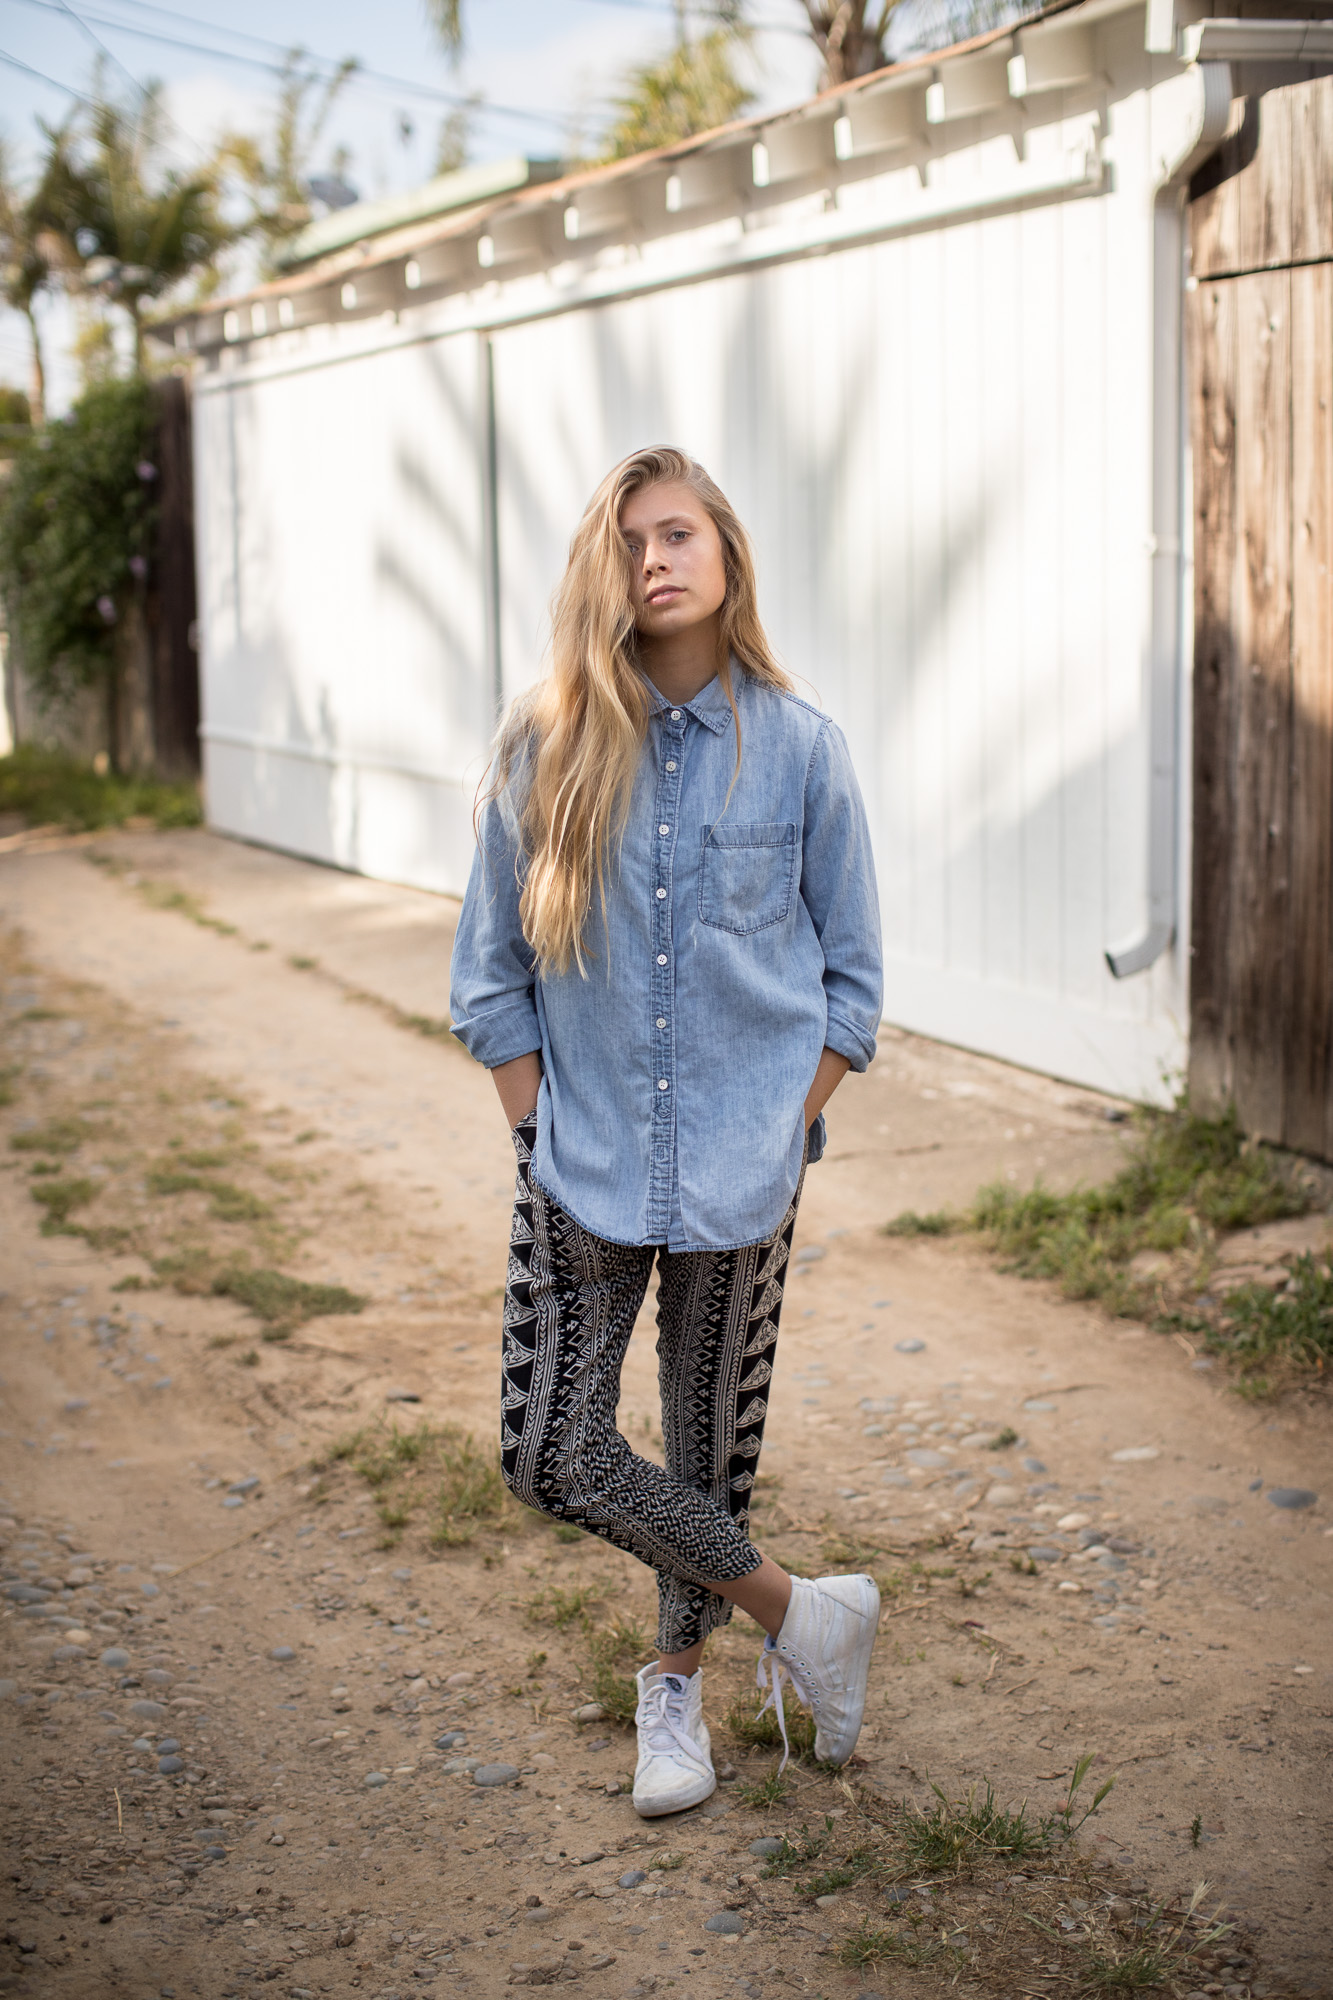 reese peters model teen outdoor beautiful lifestyle fashion photographer photography california blue button up